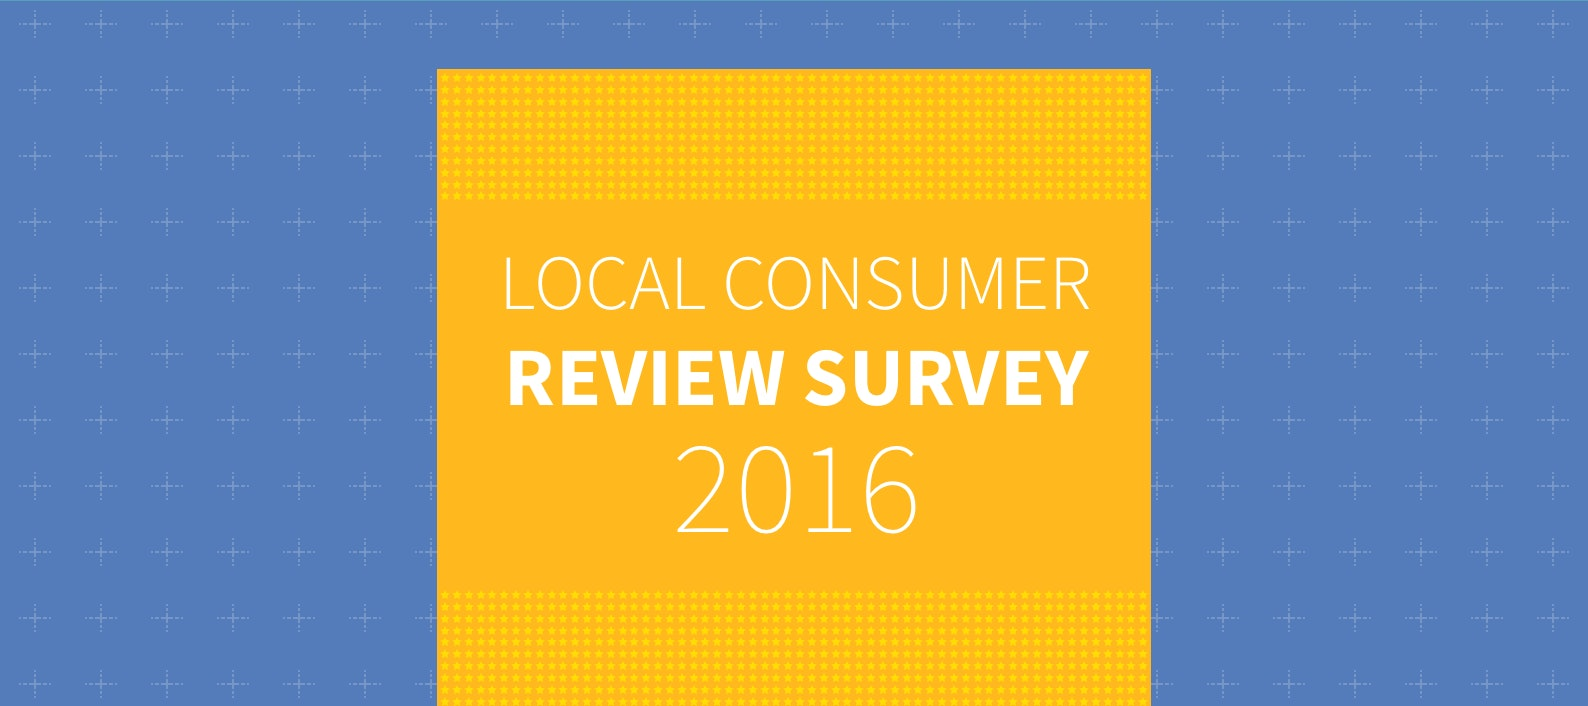 Local Consumer Review Survey 2016